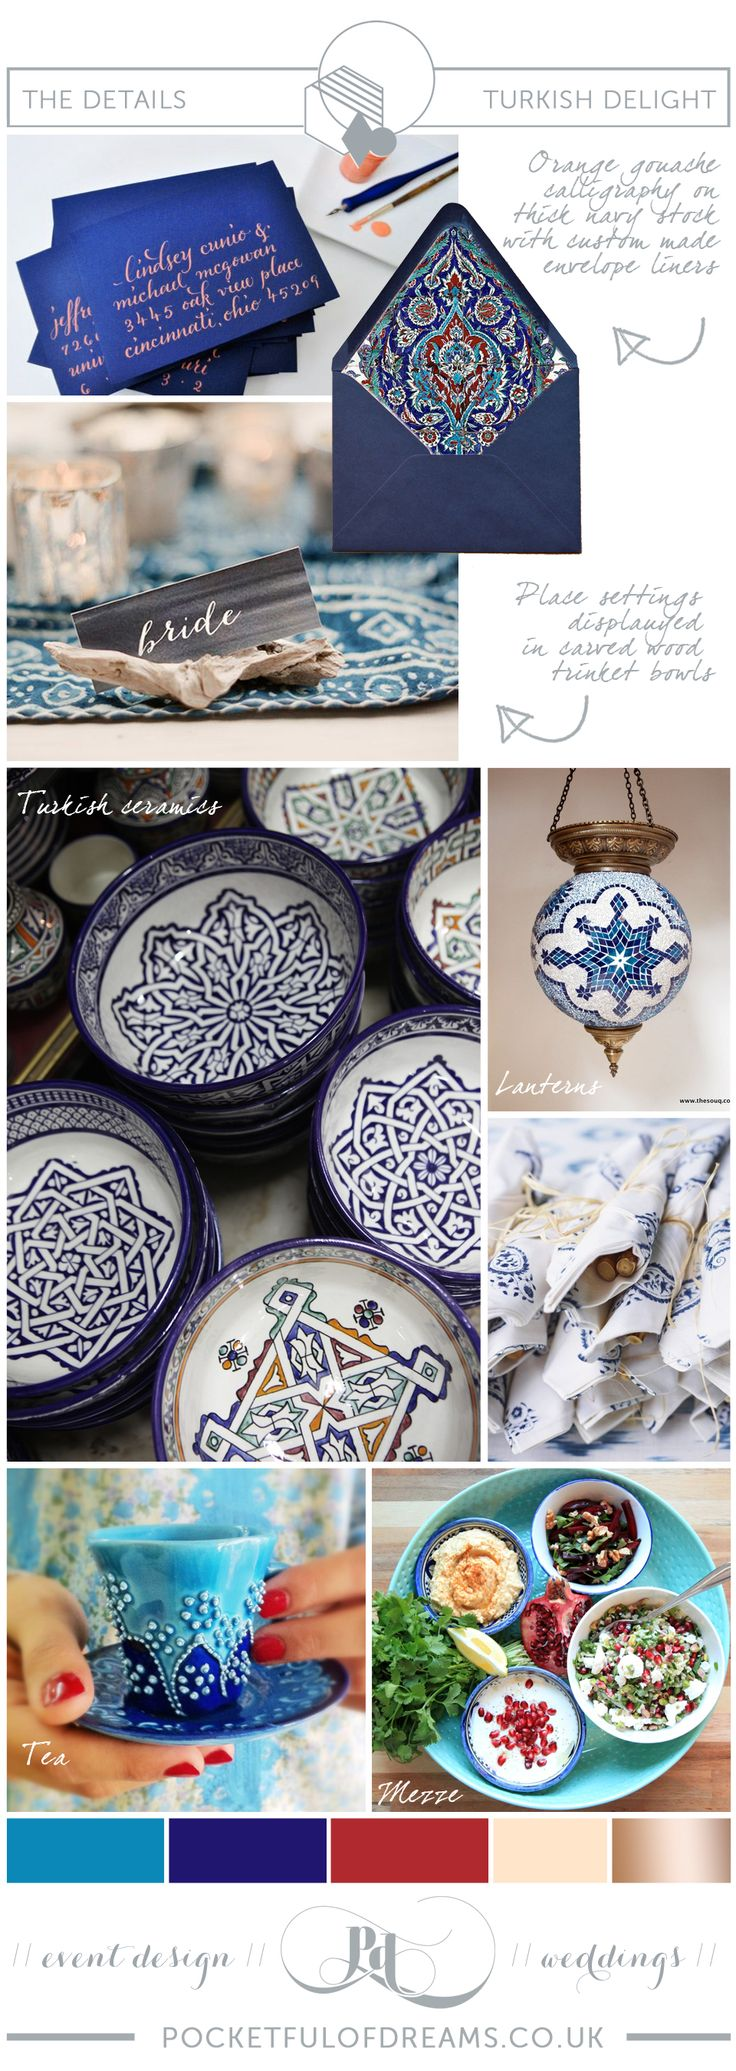 Turkish/Turkey inspired wedding. Inspiration boards produced by Pocketful of Dreams for lovemydress.net